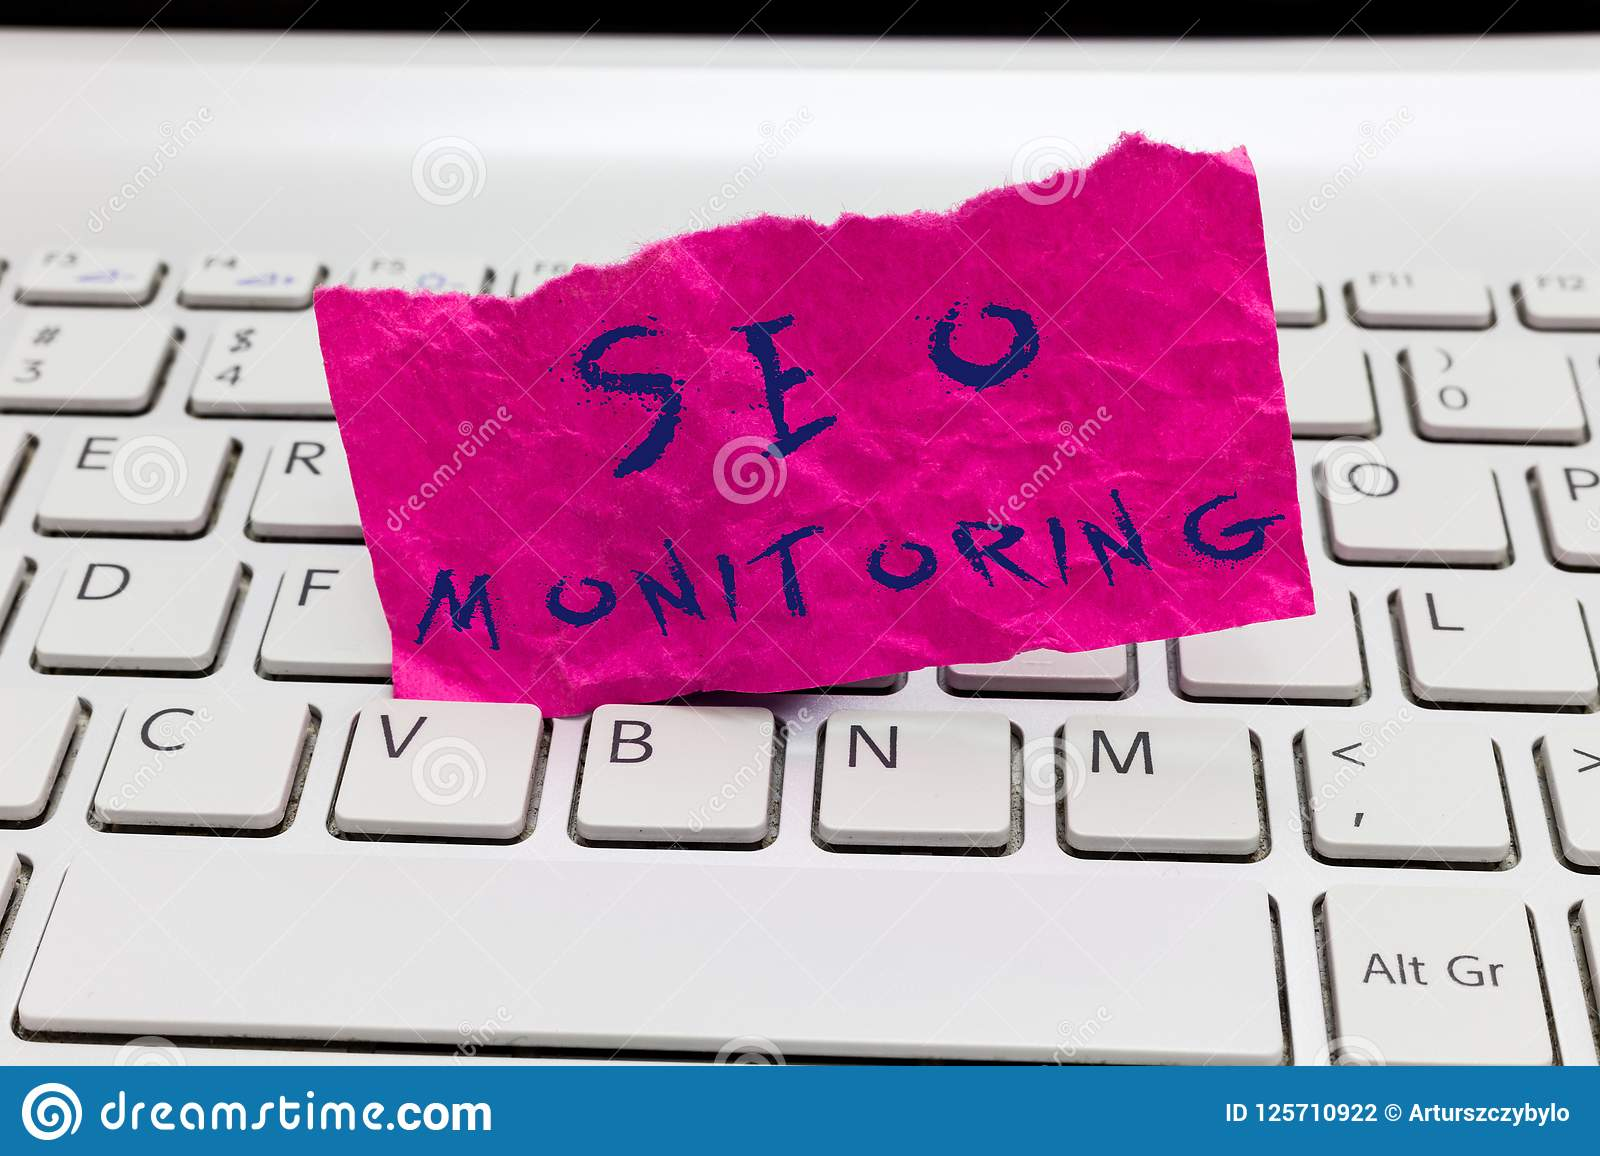 Word writing text Seo Monitoring. Business concept for Tracking the progress of strategy made in the platform